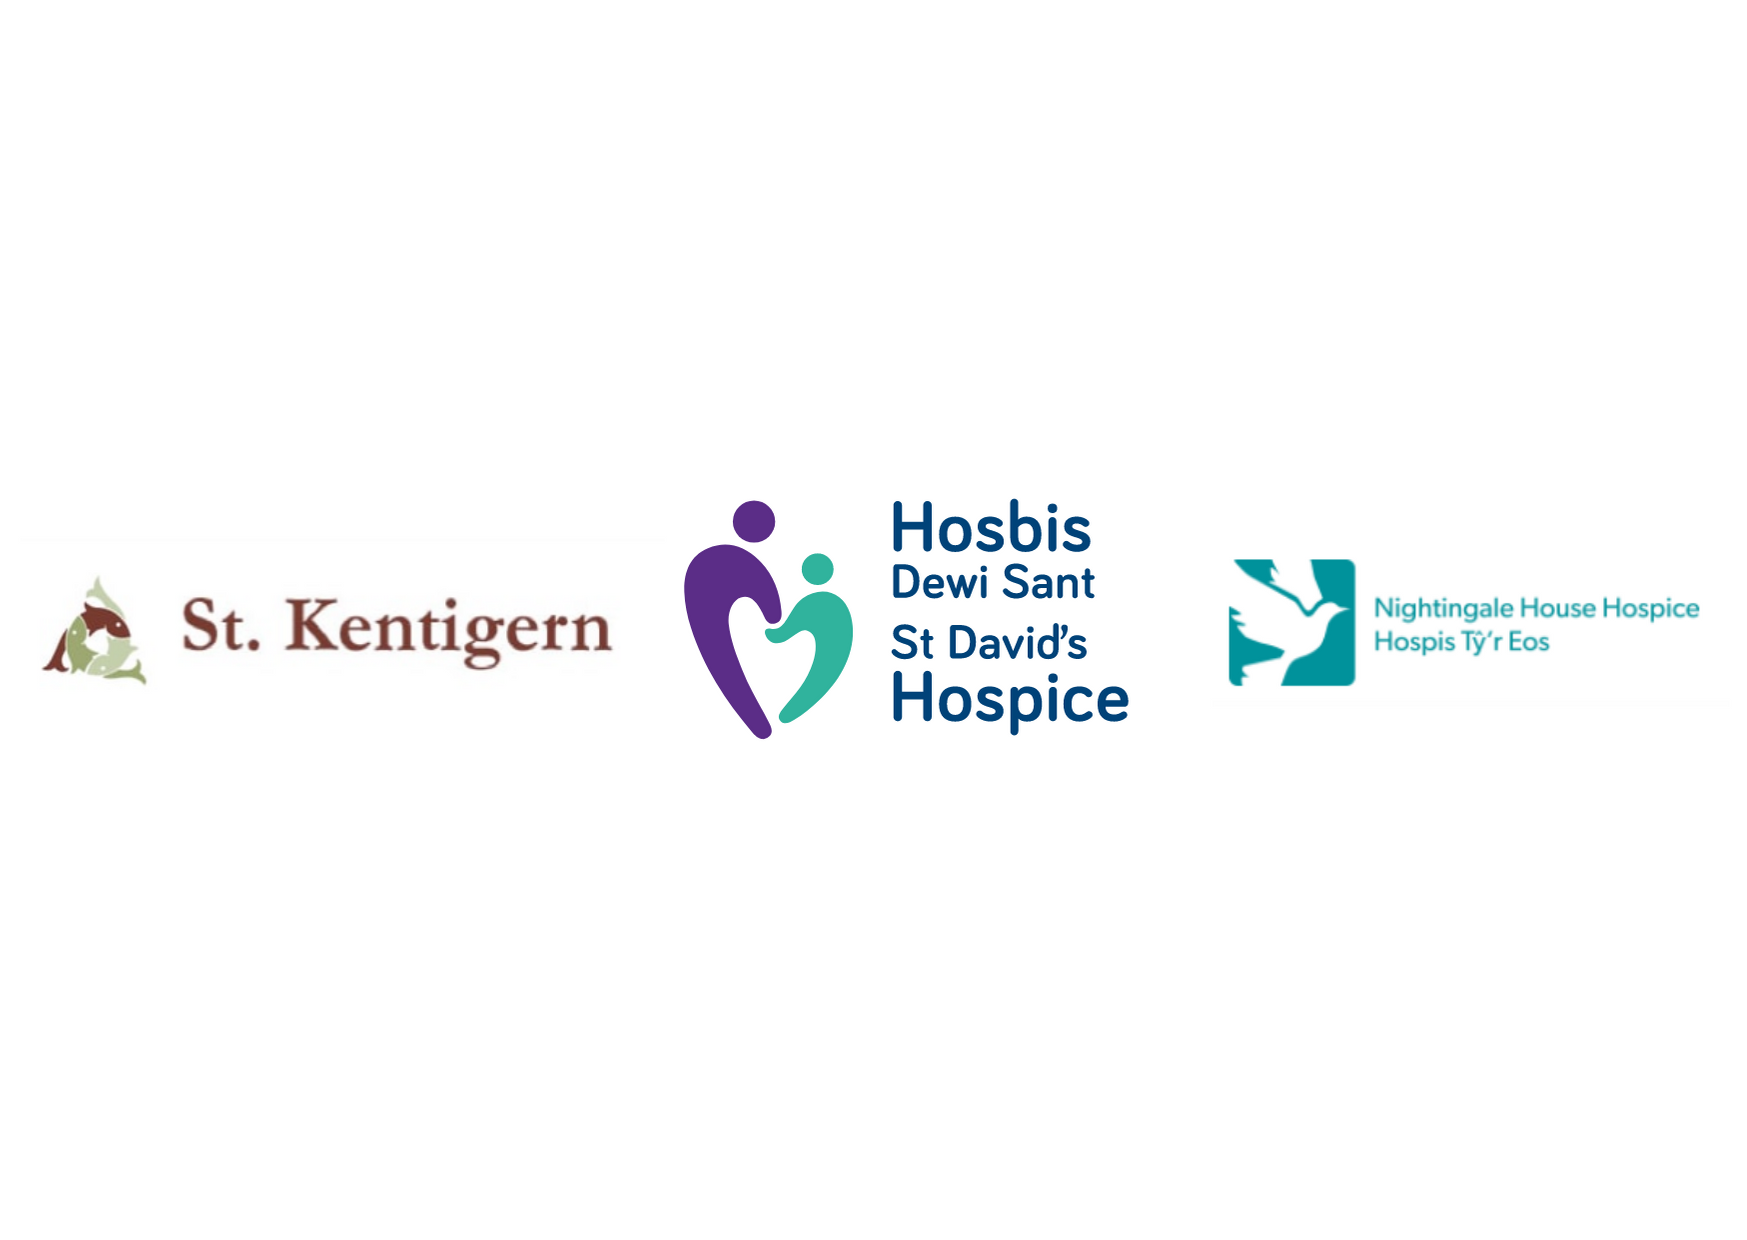 HOSPICES in North Wales continue to receive less than half of the funding awarded to counterparts in the south of the country.